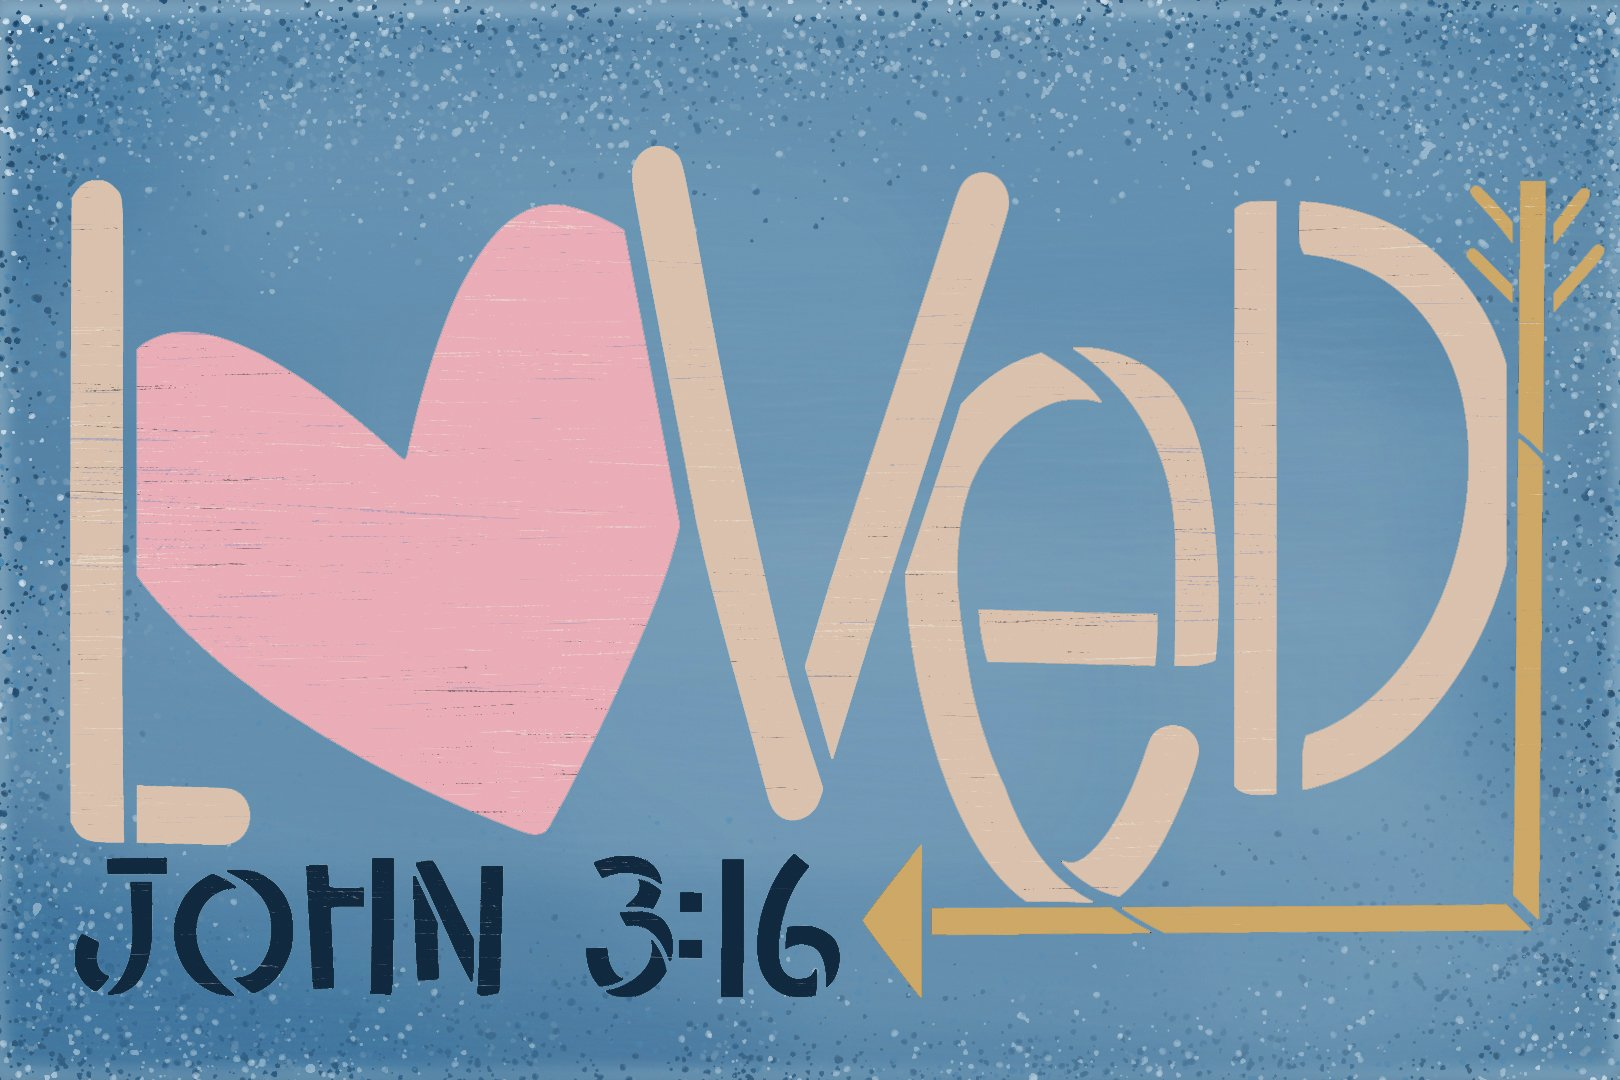 Loved John 3:16 Stencil with Heart & Arrow by StudioR12   DIY Faith Home Decor   Craft & Paint Valentine's Wood Signs   Select Size